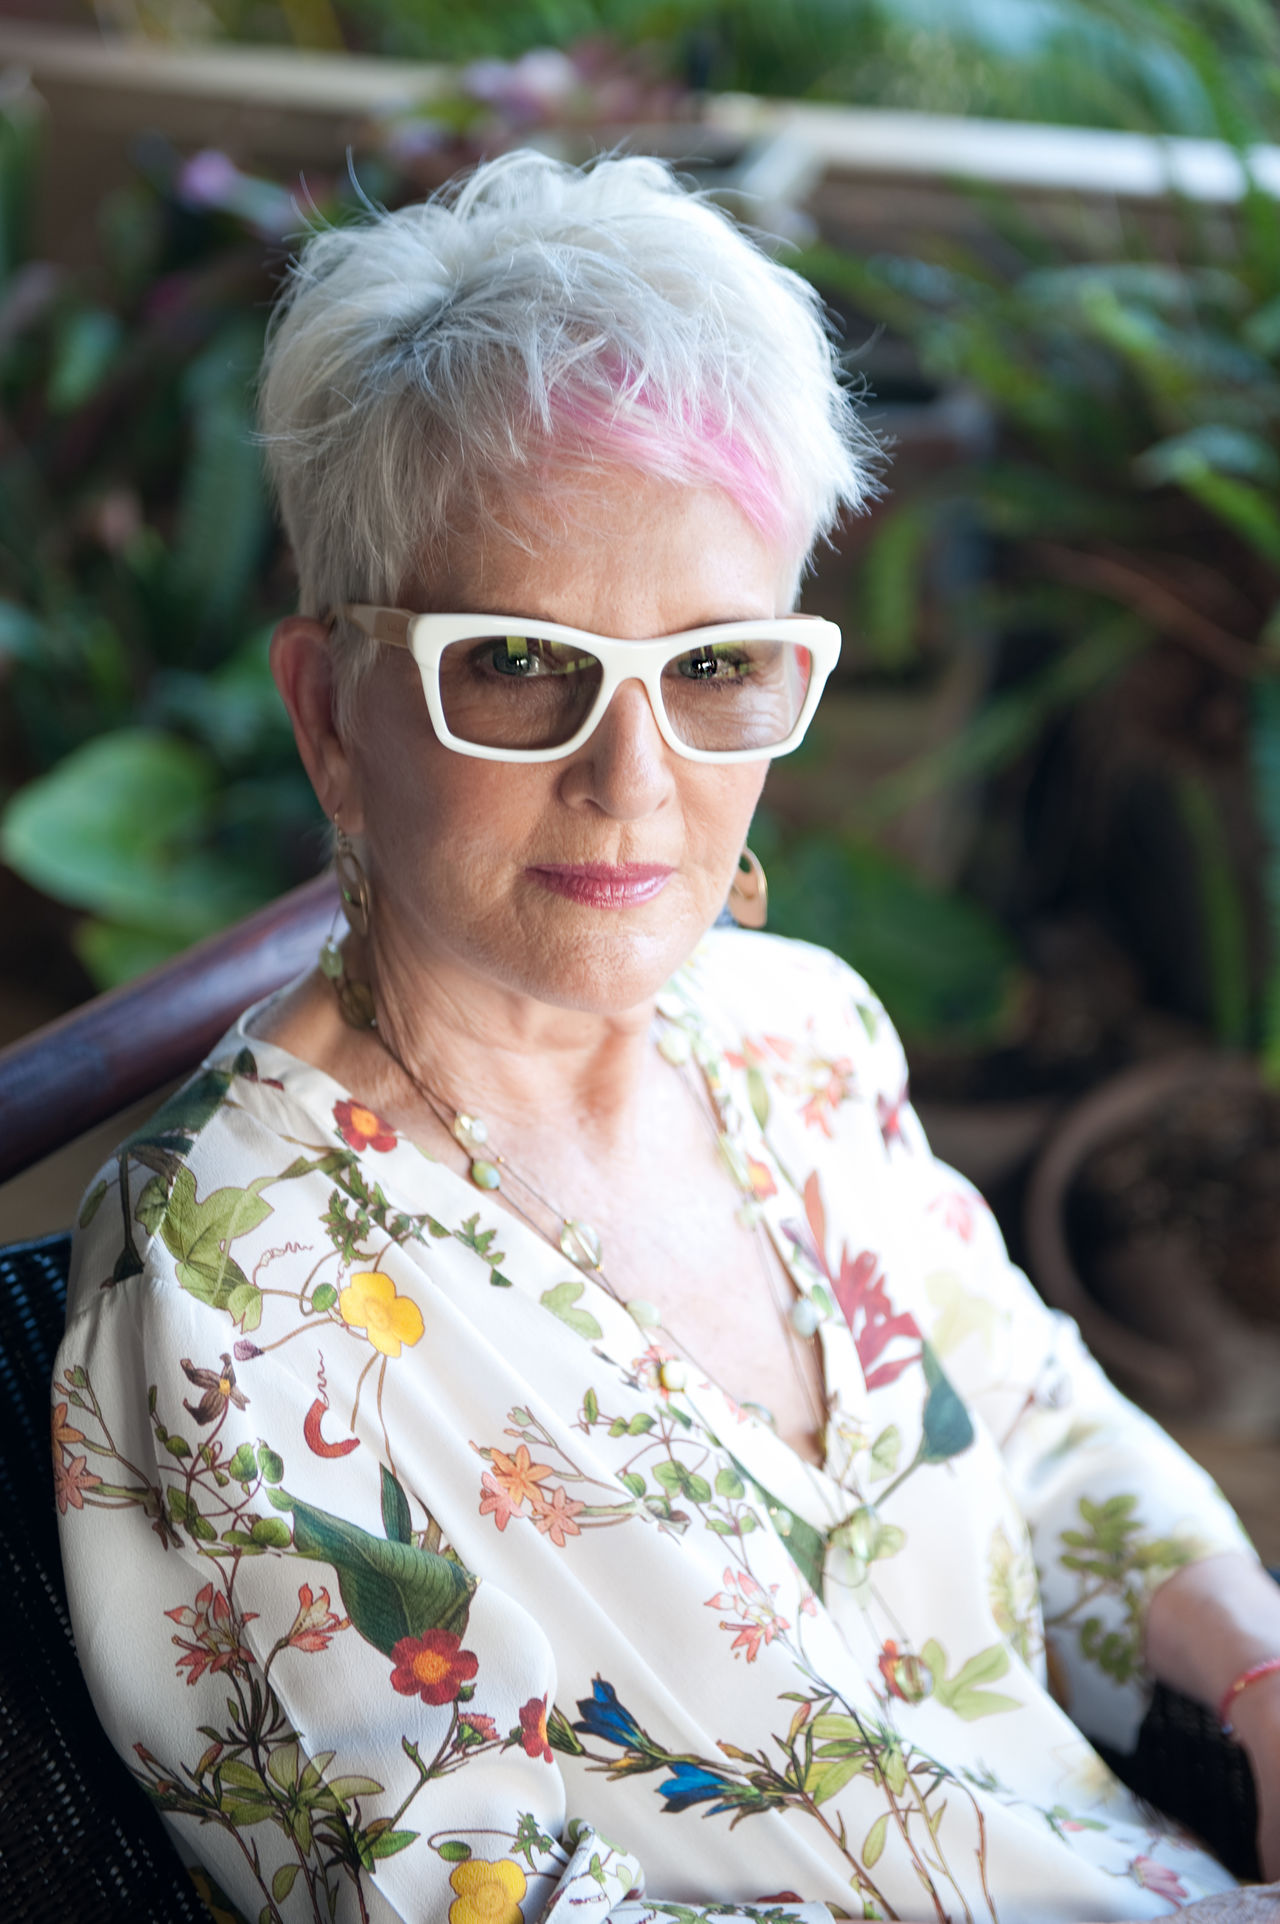 Close-up Front View Looking At Camera Person Pink Hair Pleasant Portrait Portrait Of A Woman Real People Senior Woman Sunglasses Fresh on Market The Portraitist - 2016 EyeEm Awards The OO Mission